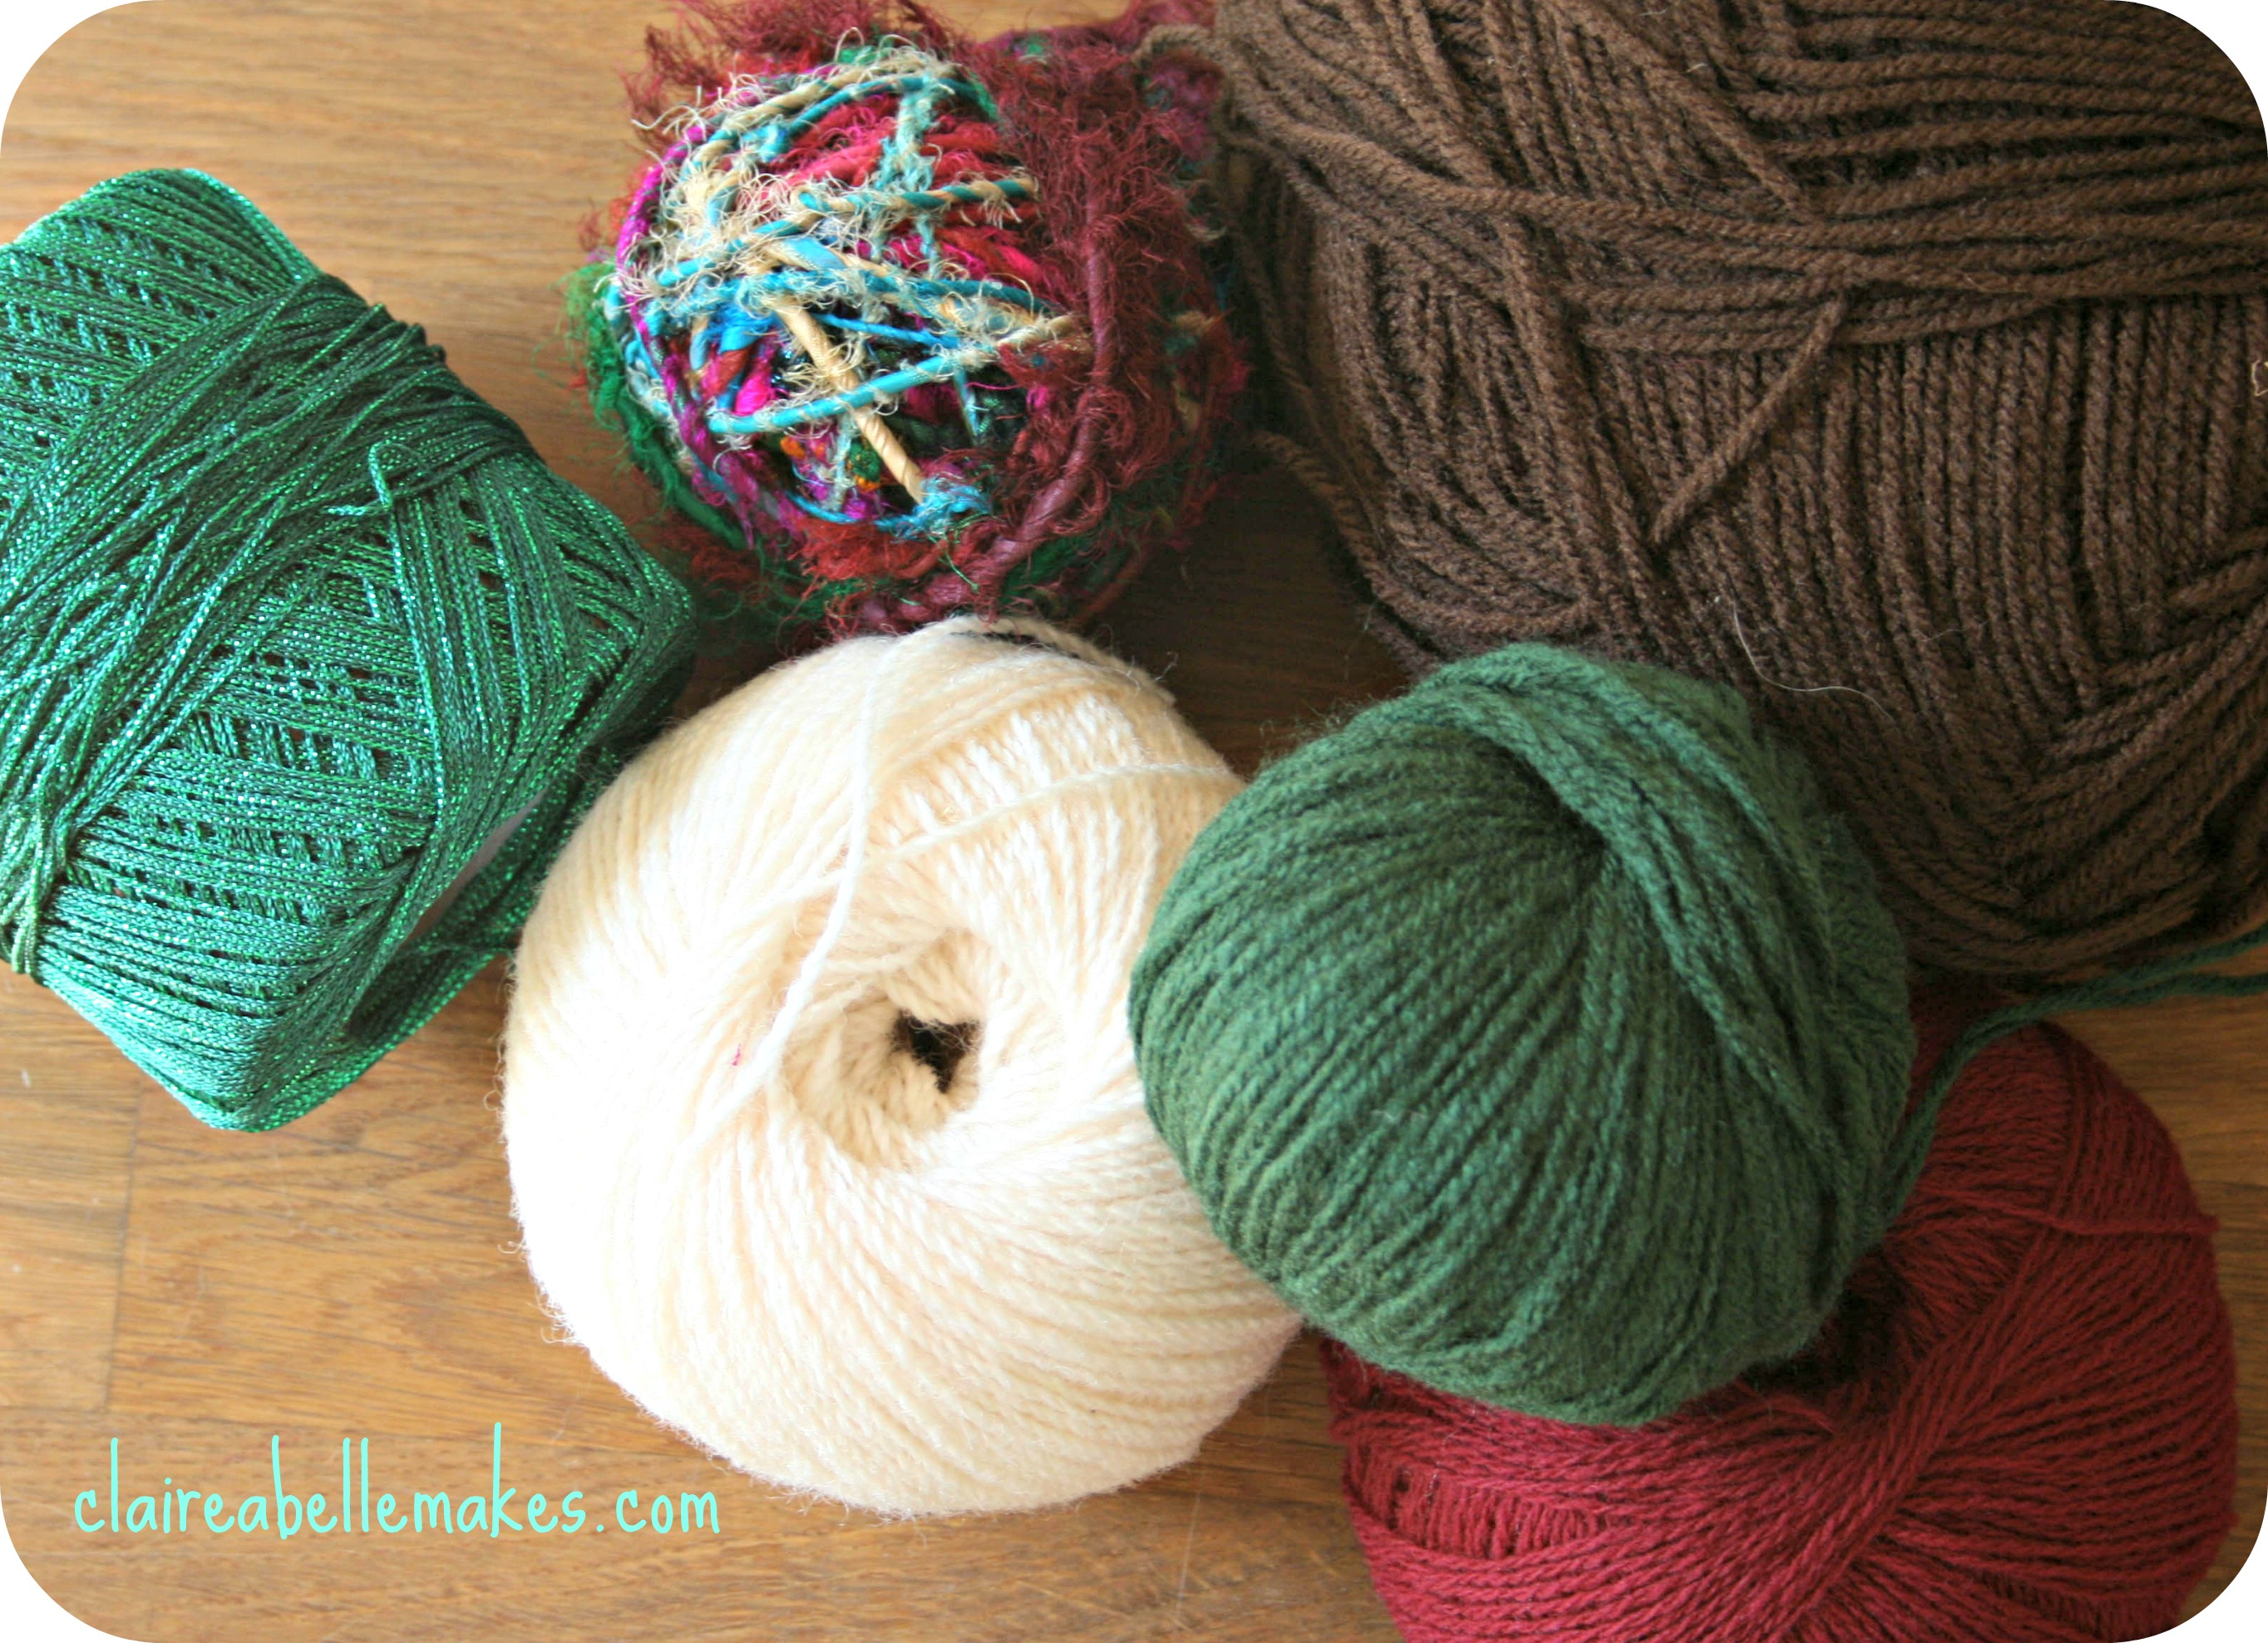 Homecrafts Yarn on claireabellemakes